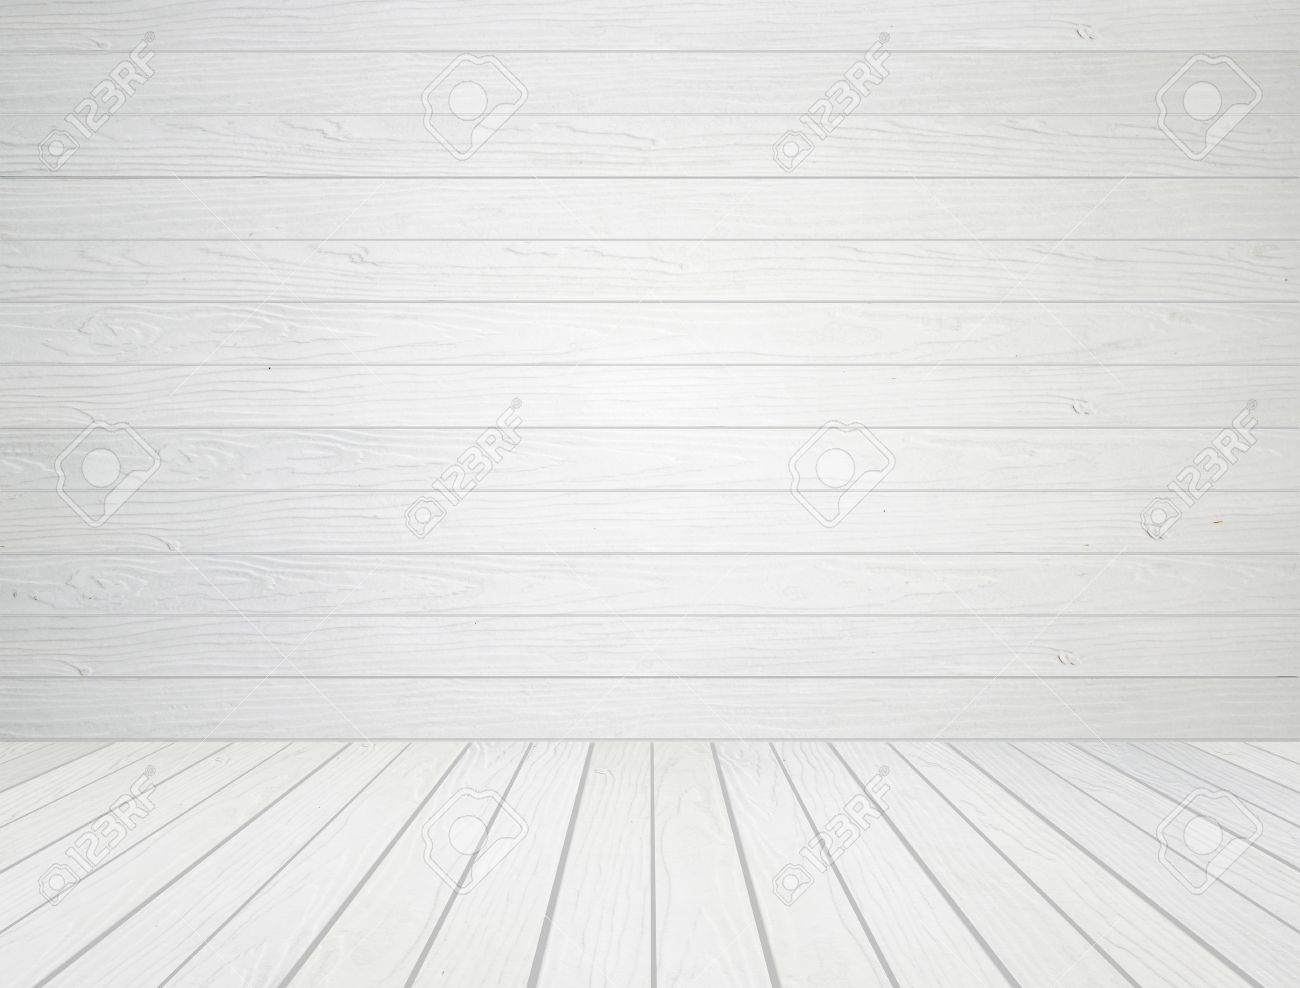 Room Interior With White Wood Wall And Wood Floor Background Stock Photo    20614396